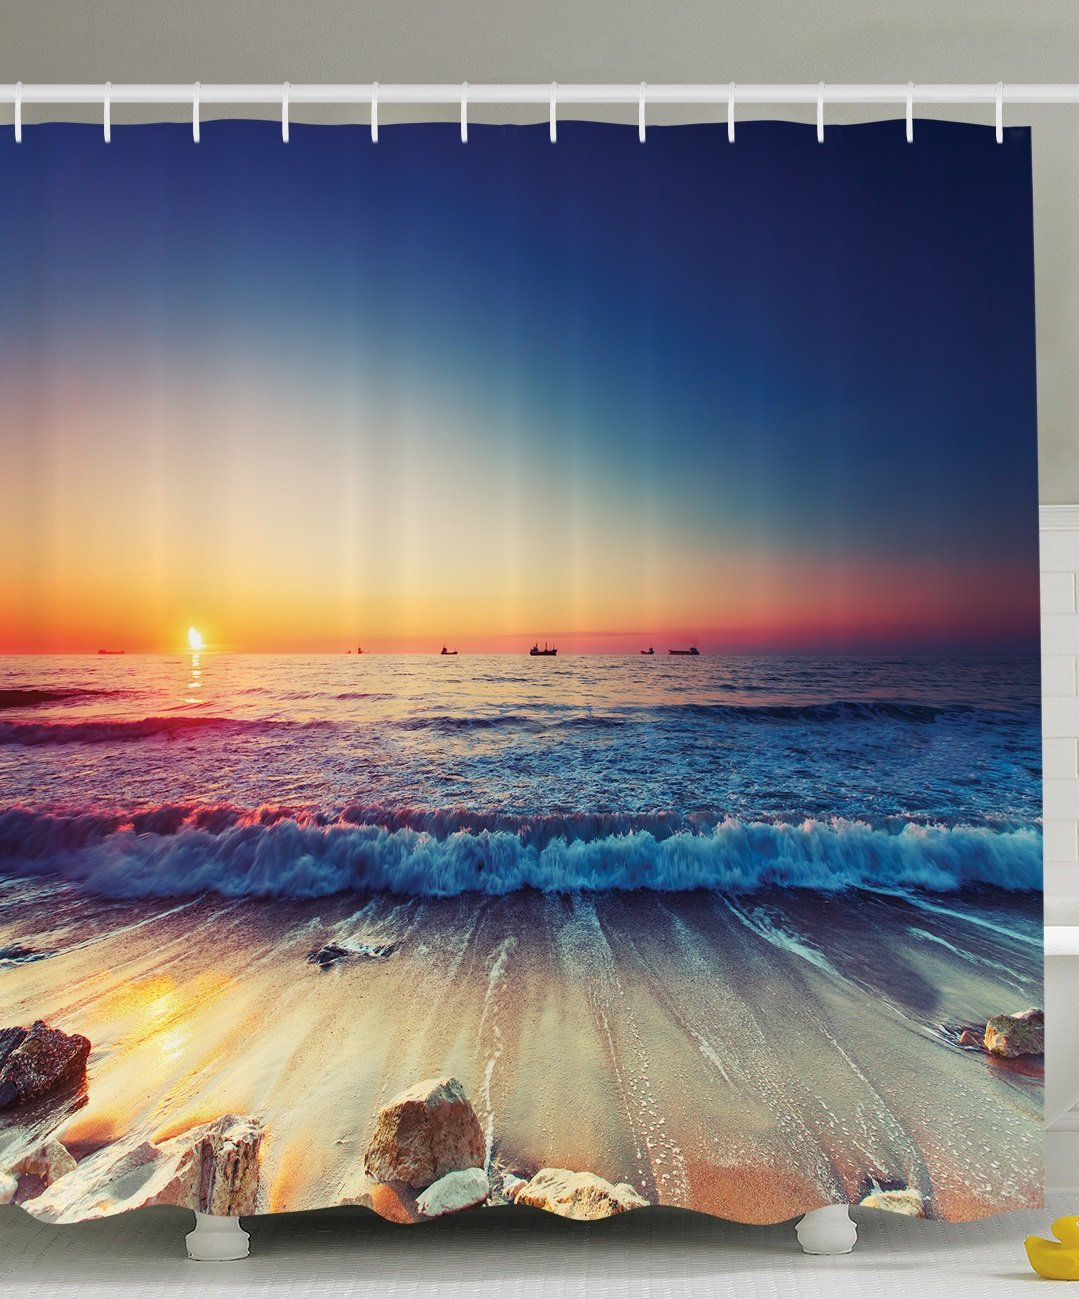 Ambesonne Nautical Decor Ocean Sunset Scenery Pictures Waves, Polyester Fabric Bathroom Shower Curtain Set with Hooks